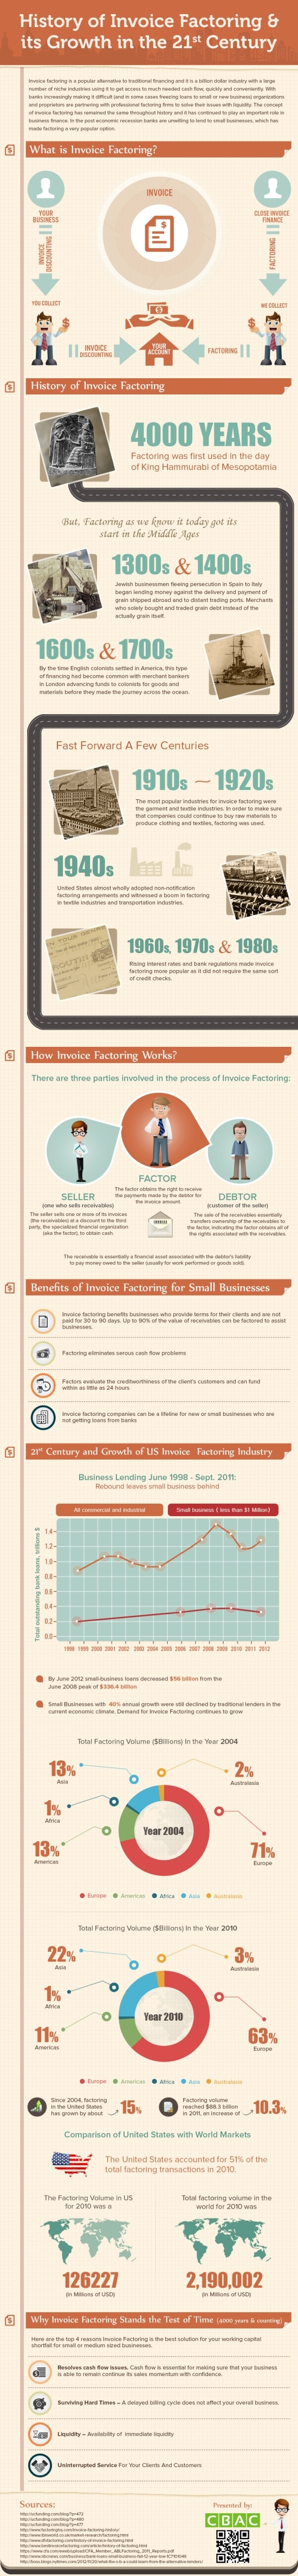 Invoice Factoring Growth Up to the 21st Century